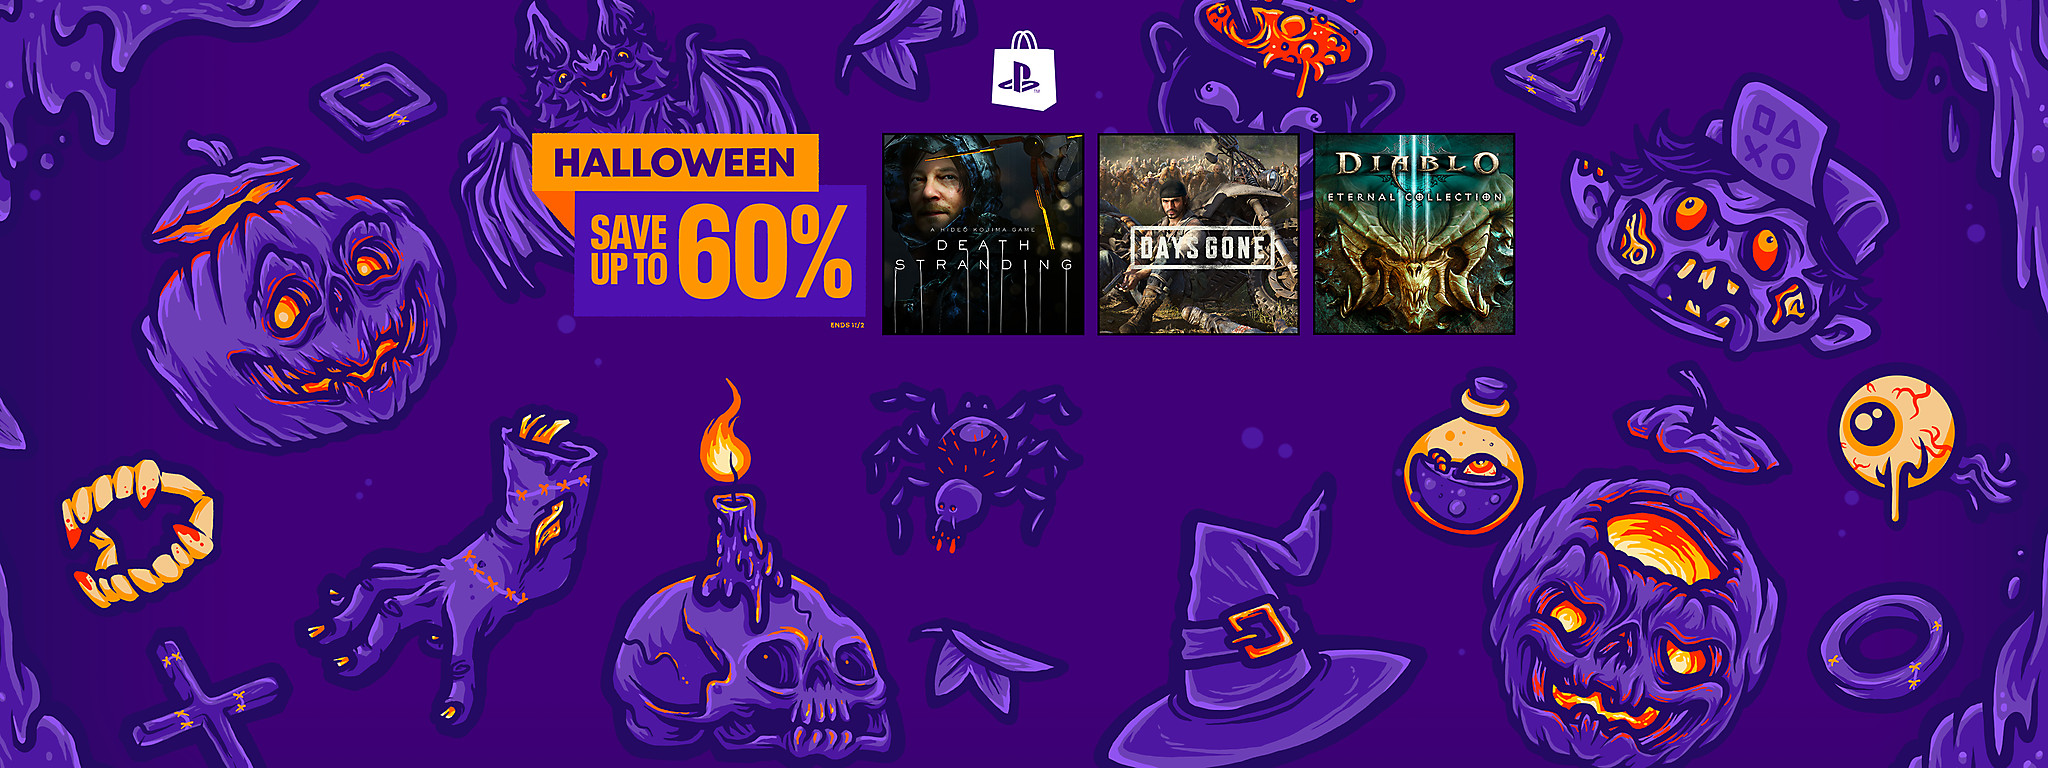 PlayStation Store - Halloween Sale